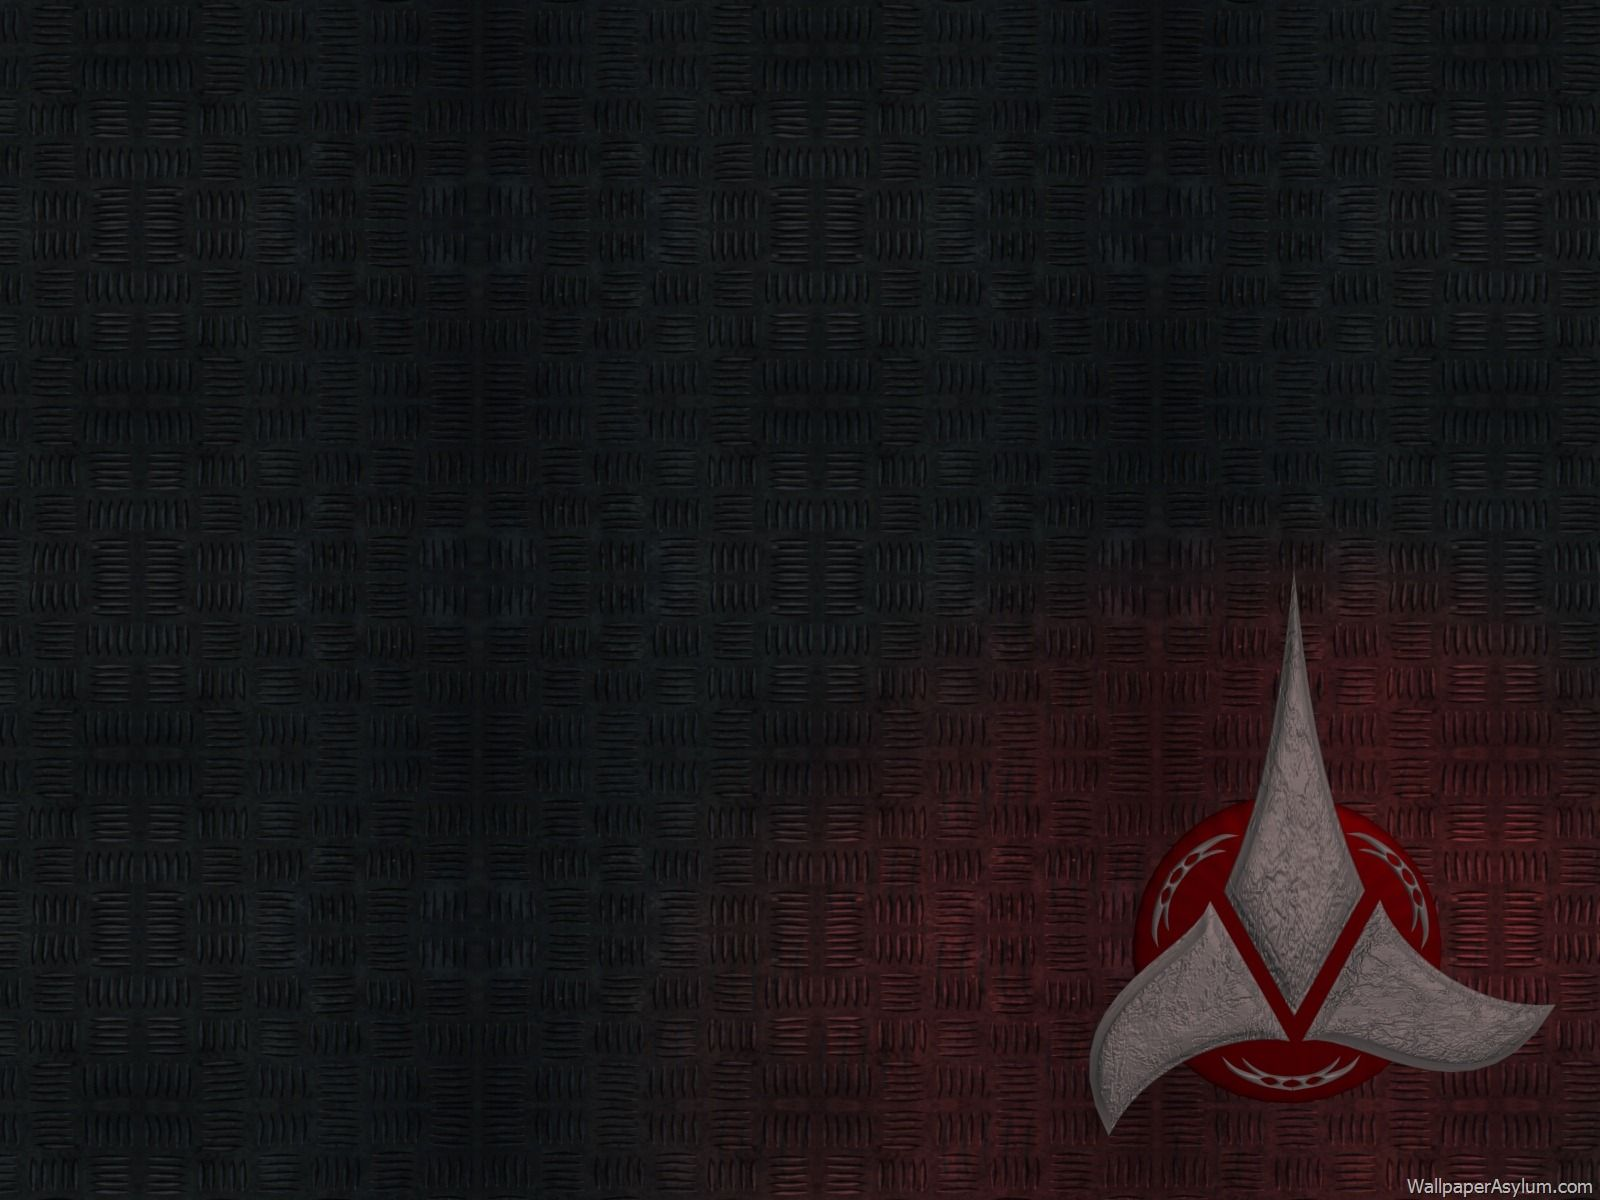 klingon enjoy this klingon wallpaper with the logo